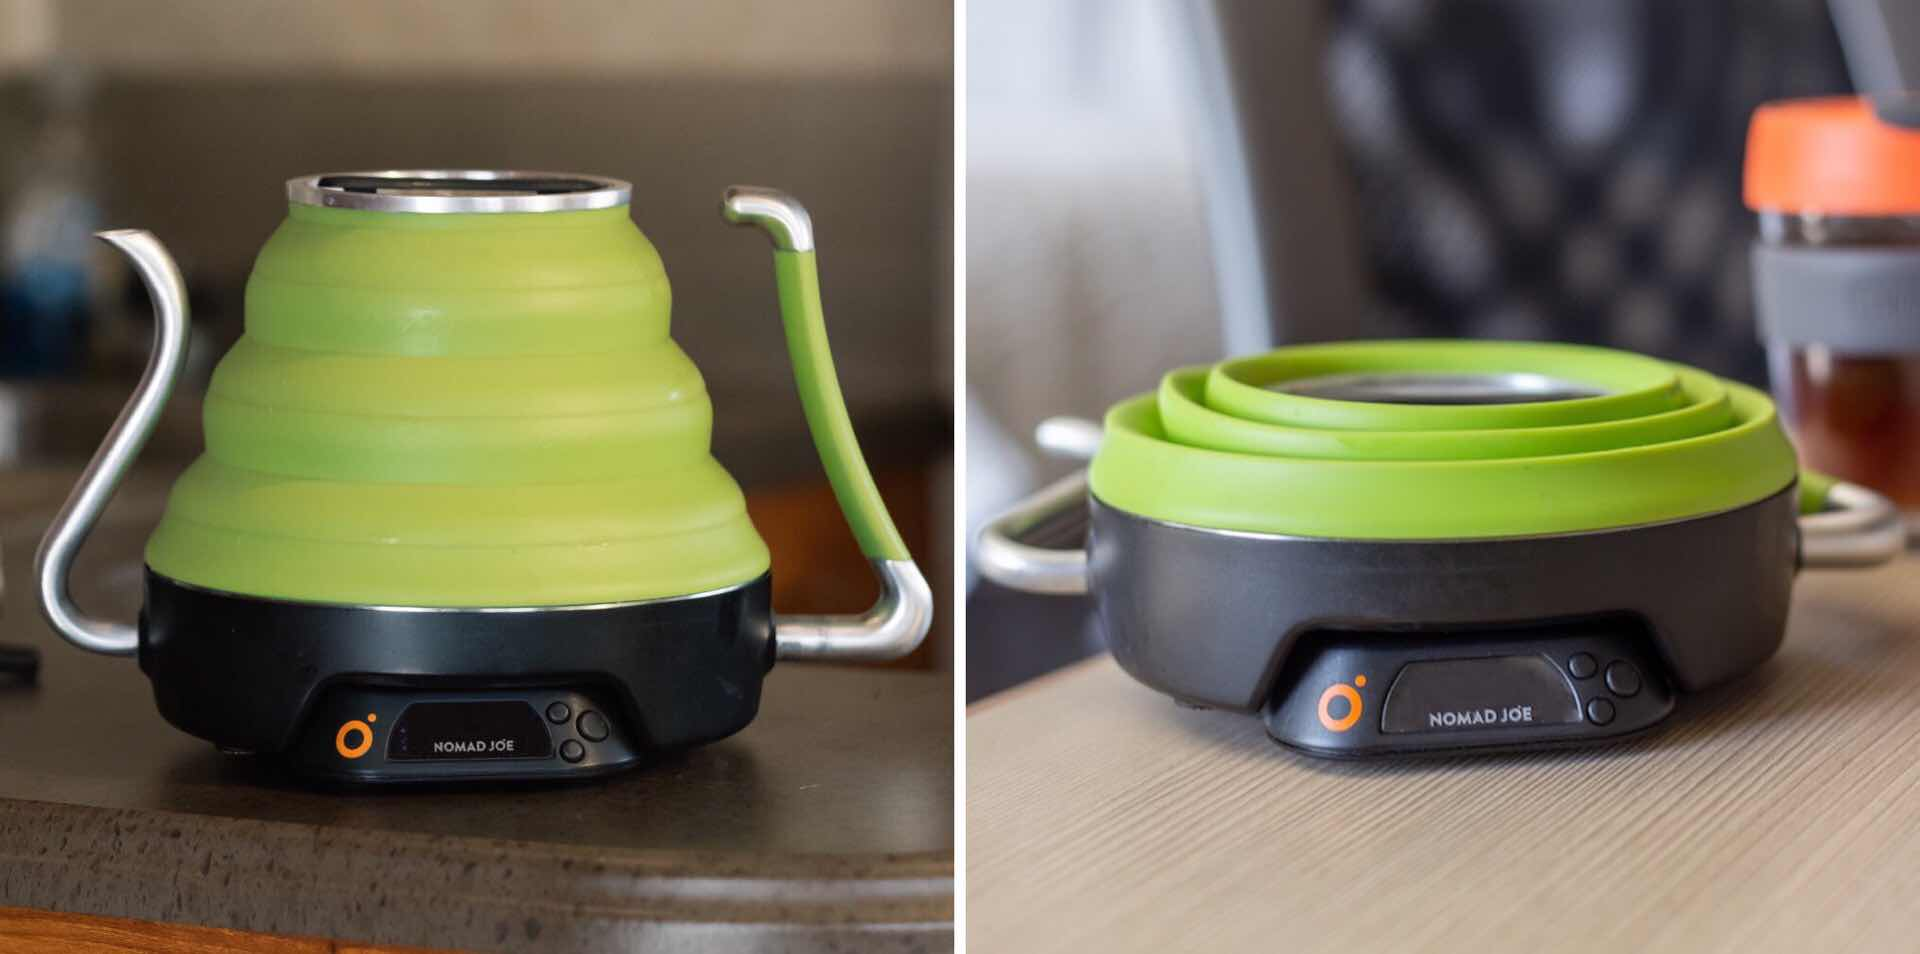 nomad-joe-voyager-collapsible-electric-gooseneck-kettle